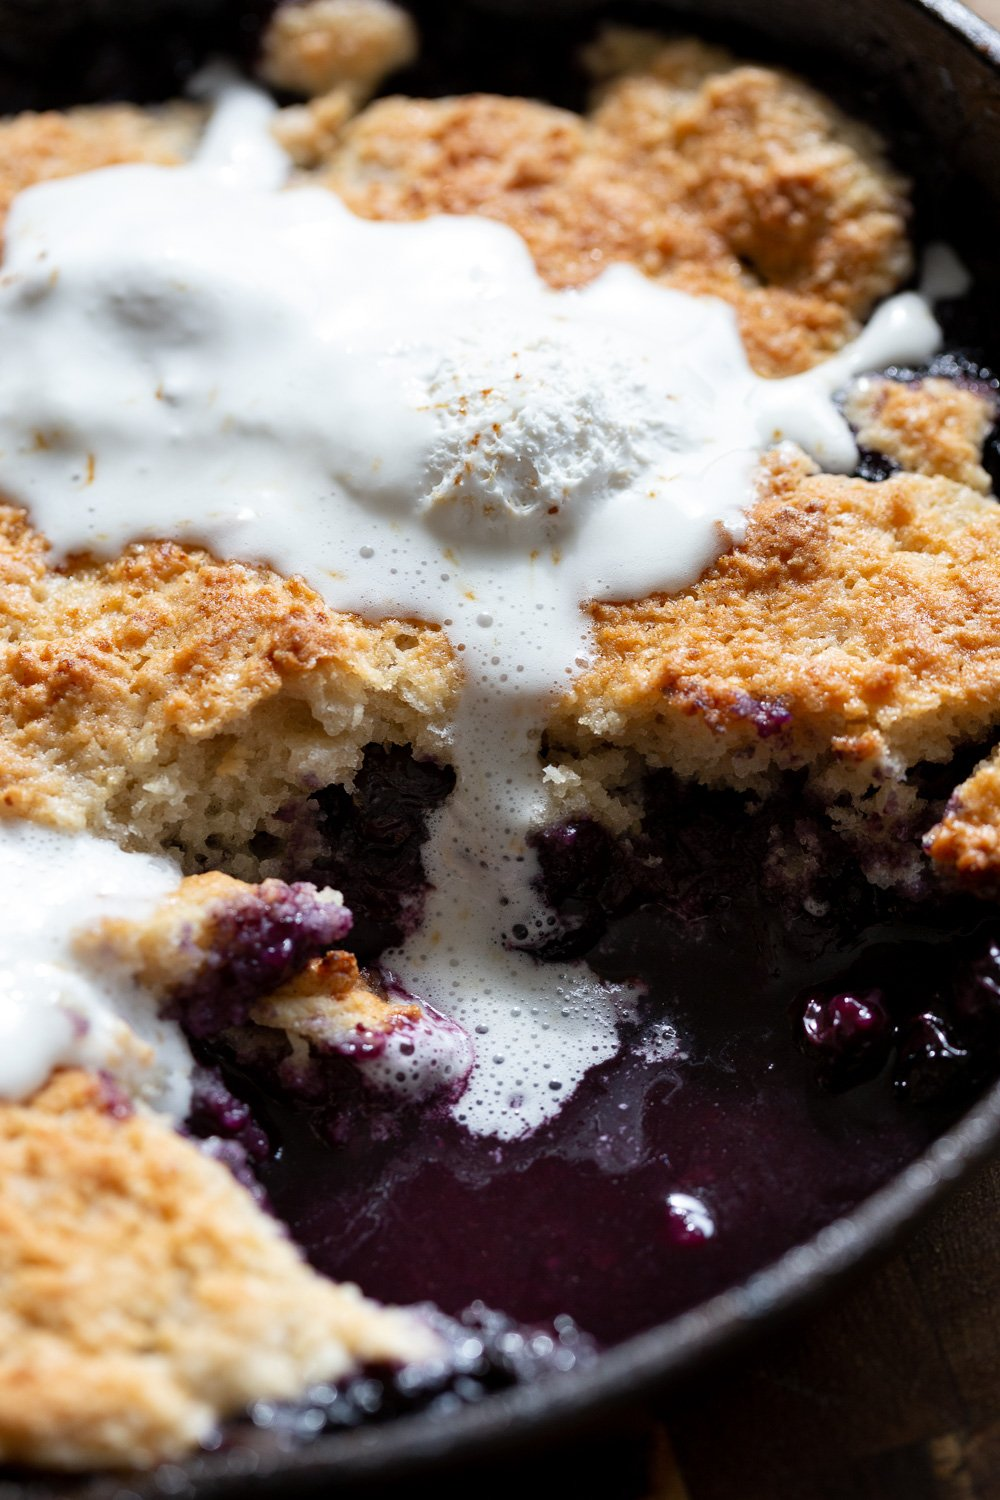 Our Vegan Blueberry Cobbler in a Cast Iron skillet